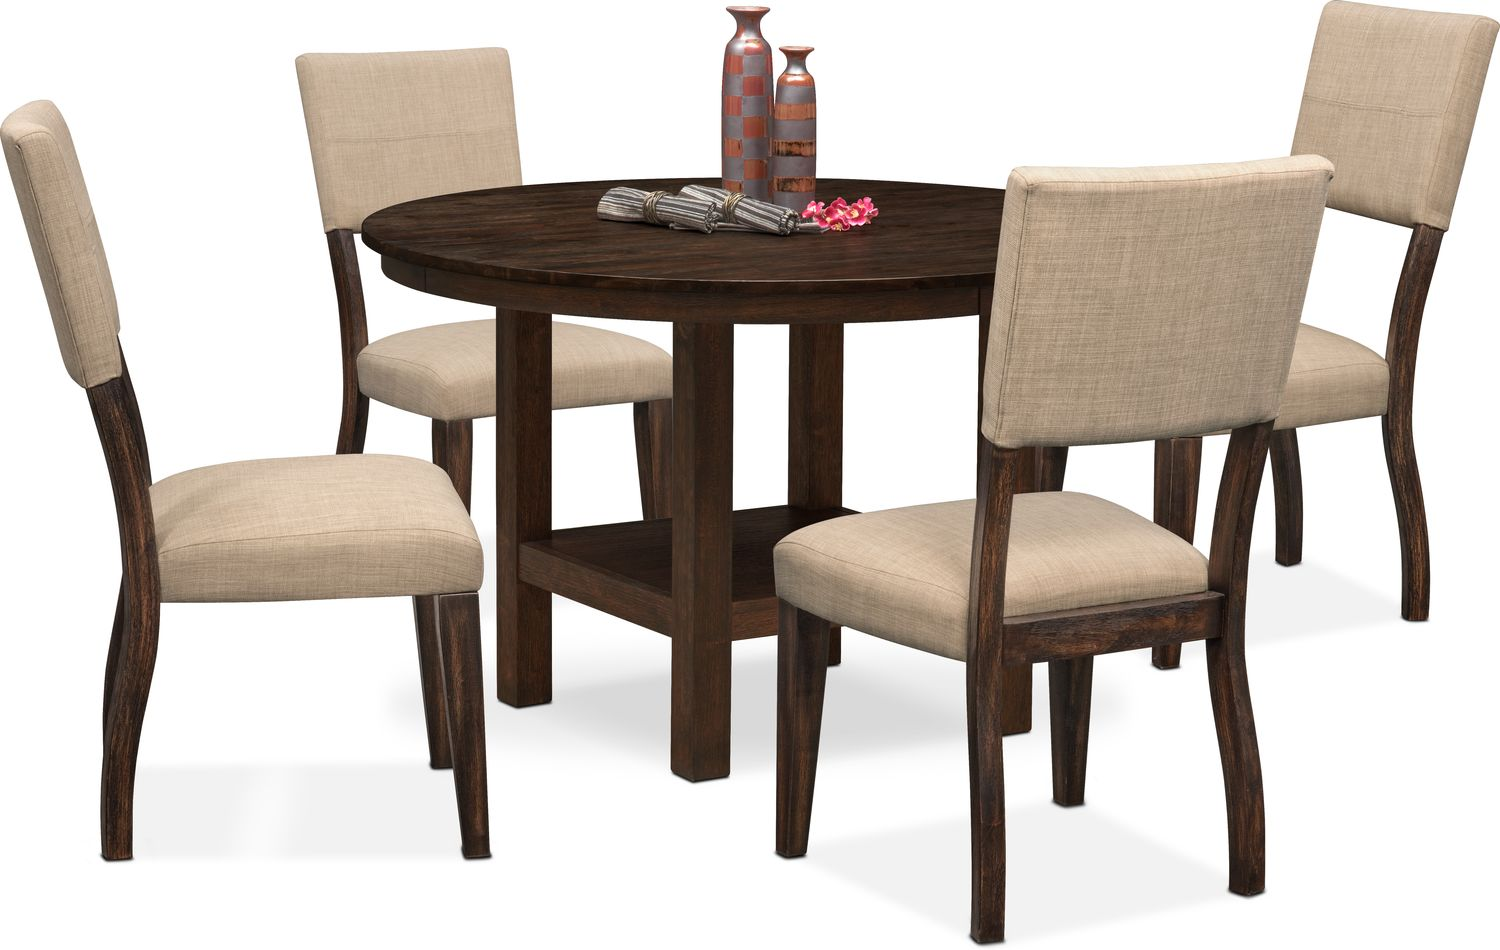 Circular Dining Table And Chairs: Tribeca Round Dining Table And 4 Upholstered Side Chairs